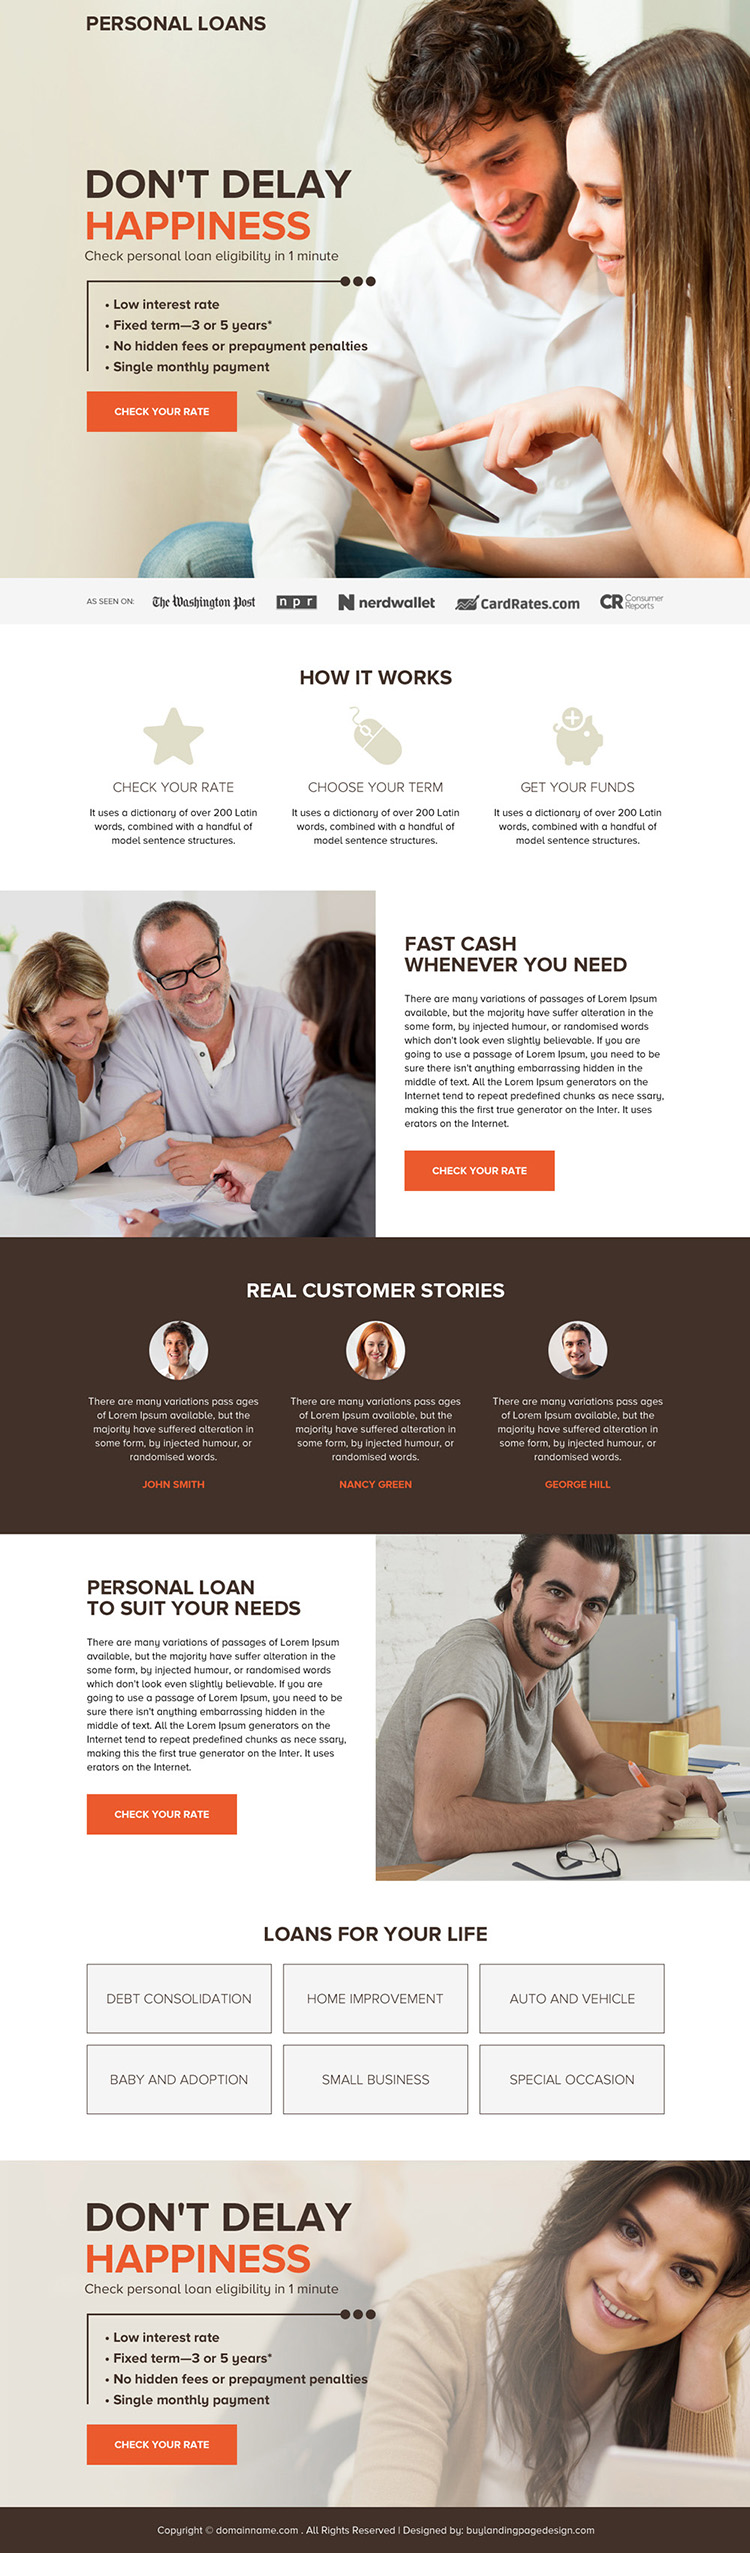 professional personal loan rates responsive landing page design